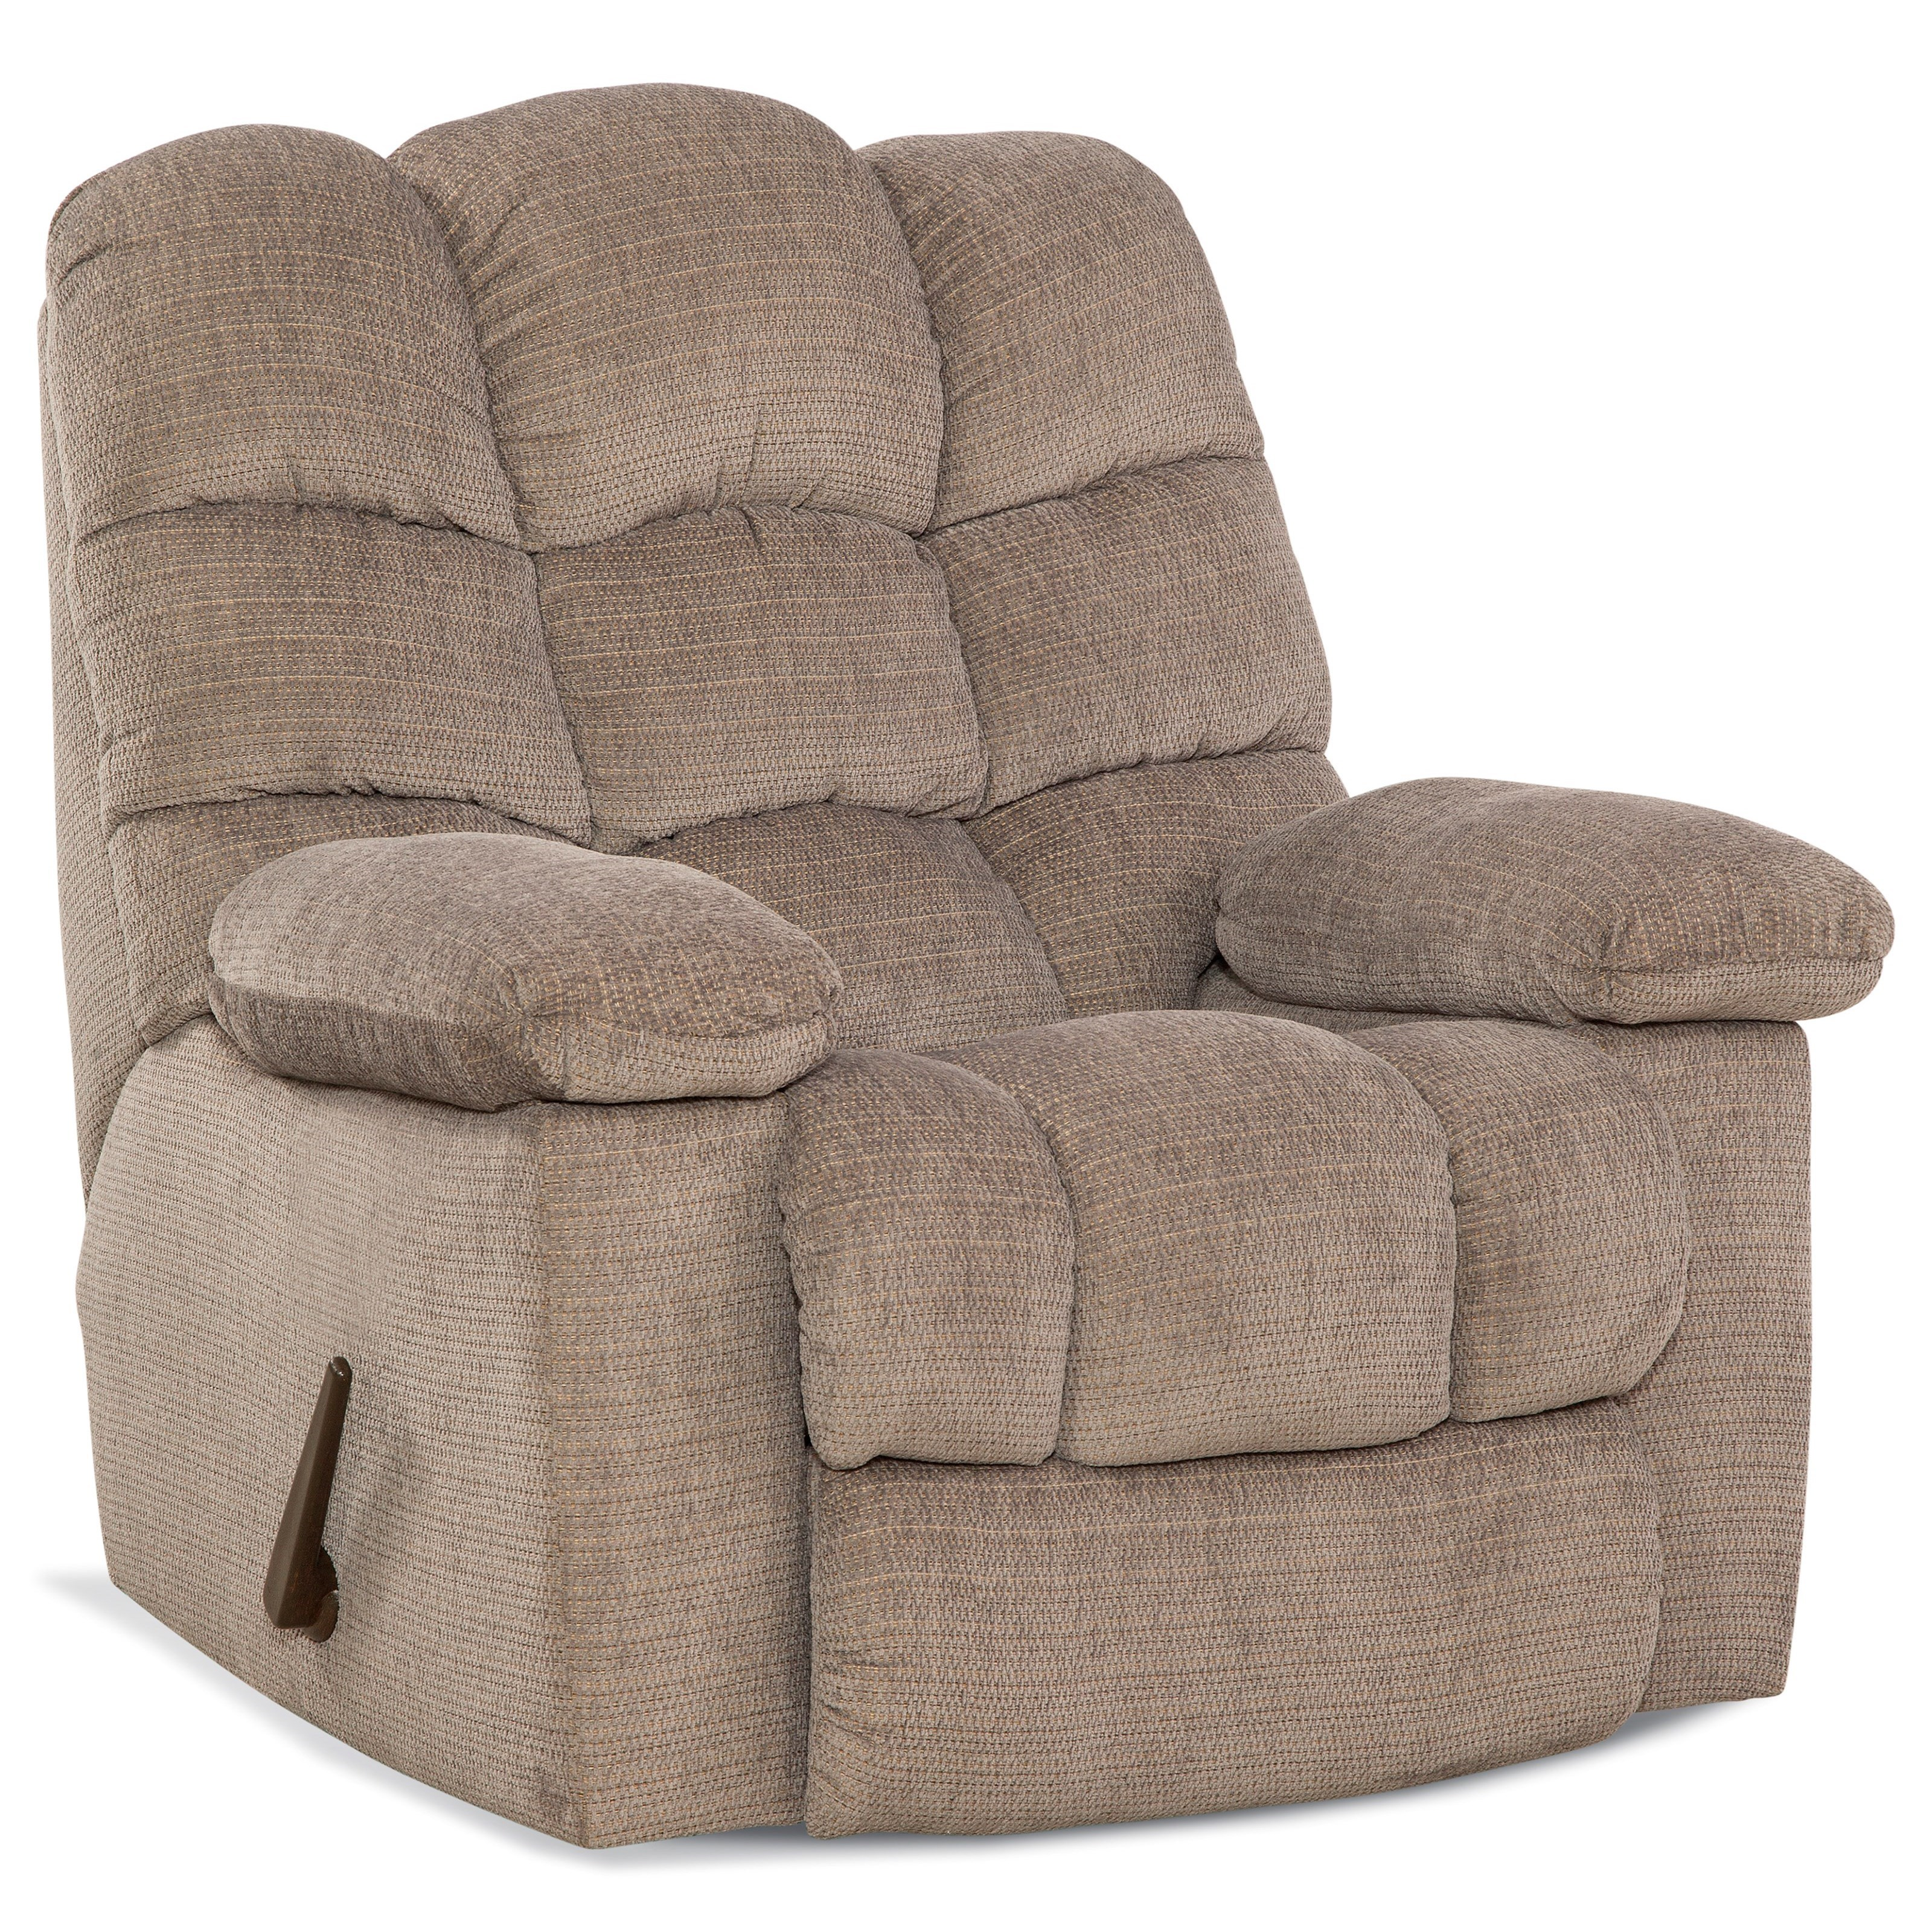 HomeStretch 160 Collection Rocker Recliner - Item Number: 160-91-14